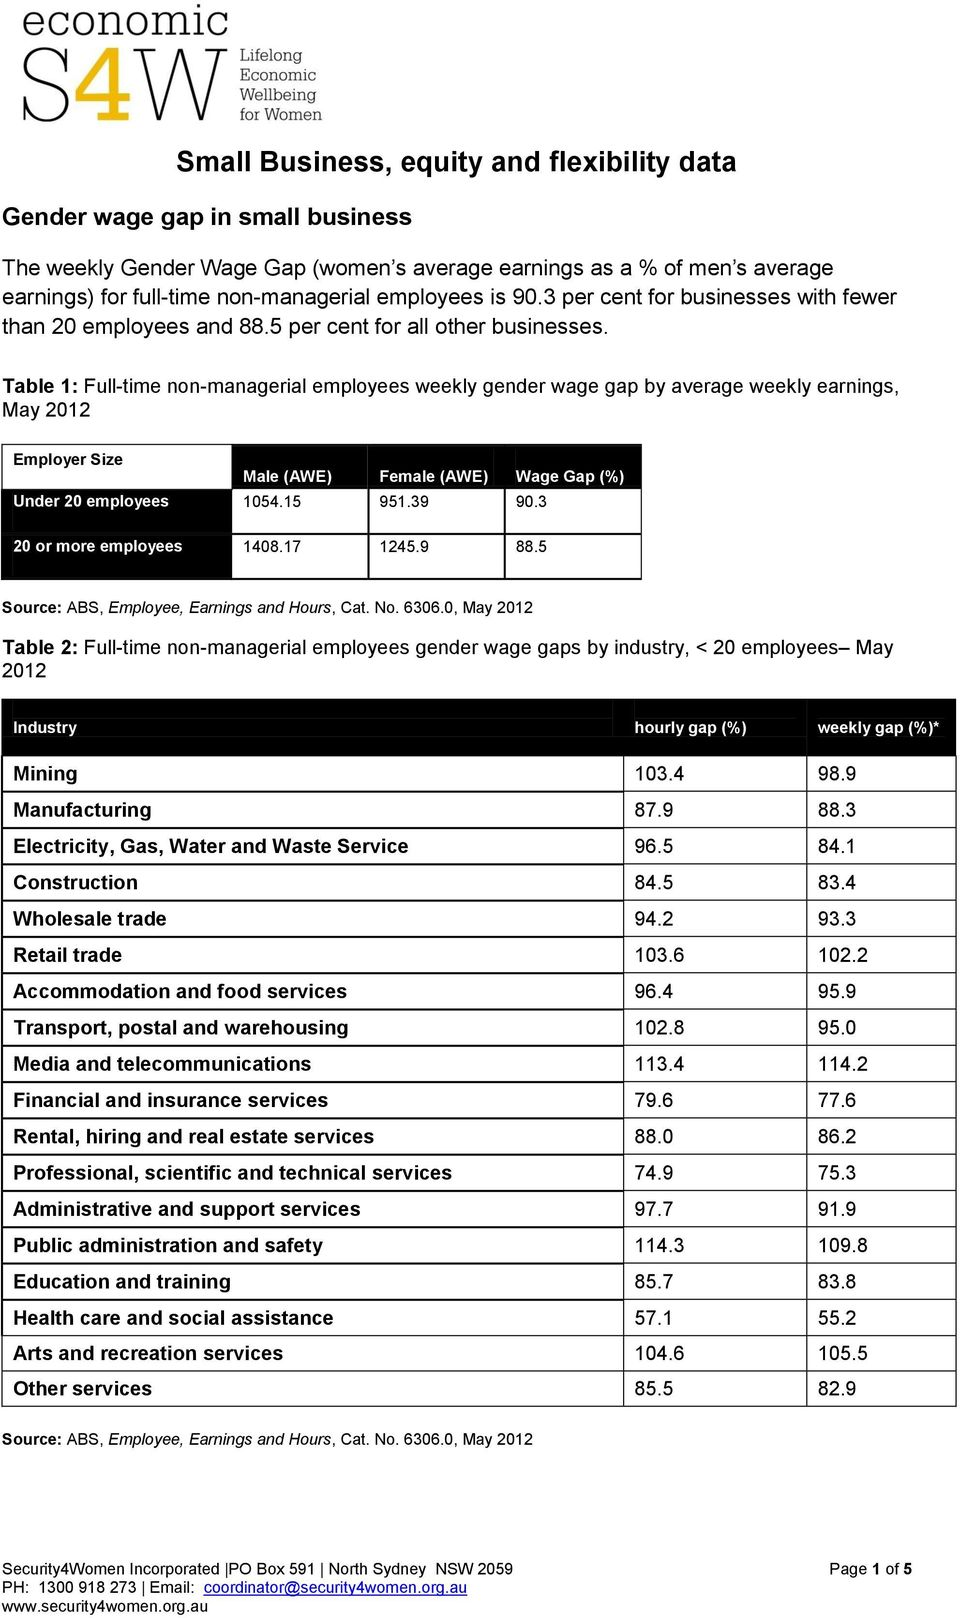 Table 1: Full-time non-managerial employees weekly gender wage gap by average weekly earnings, May 2012 Employer Size Male (AWE) Female (AWE) Wage Gap Under 20 employees 1054.15 951.39 90.